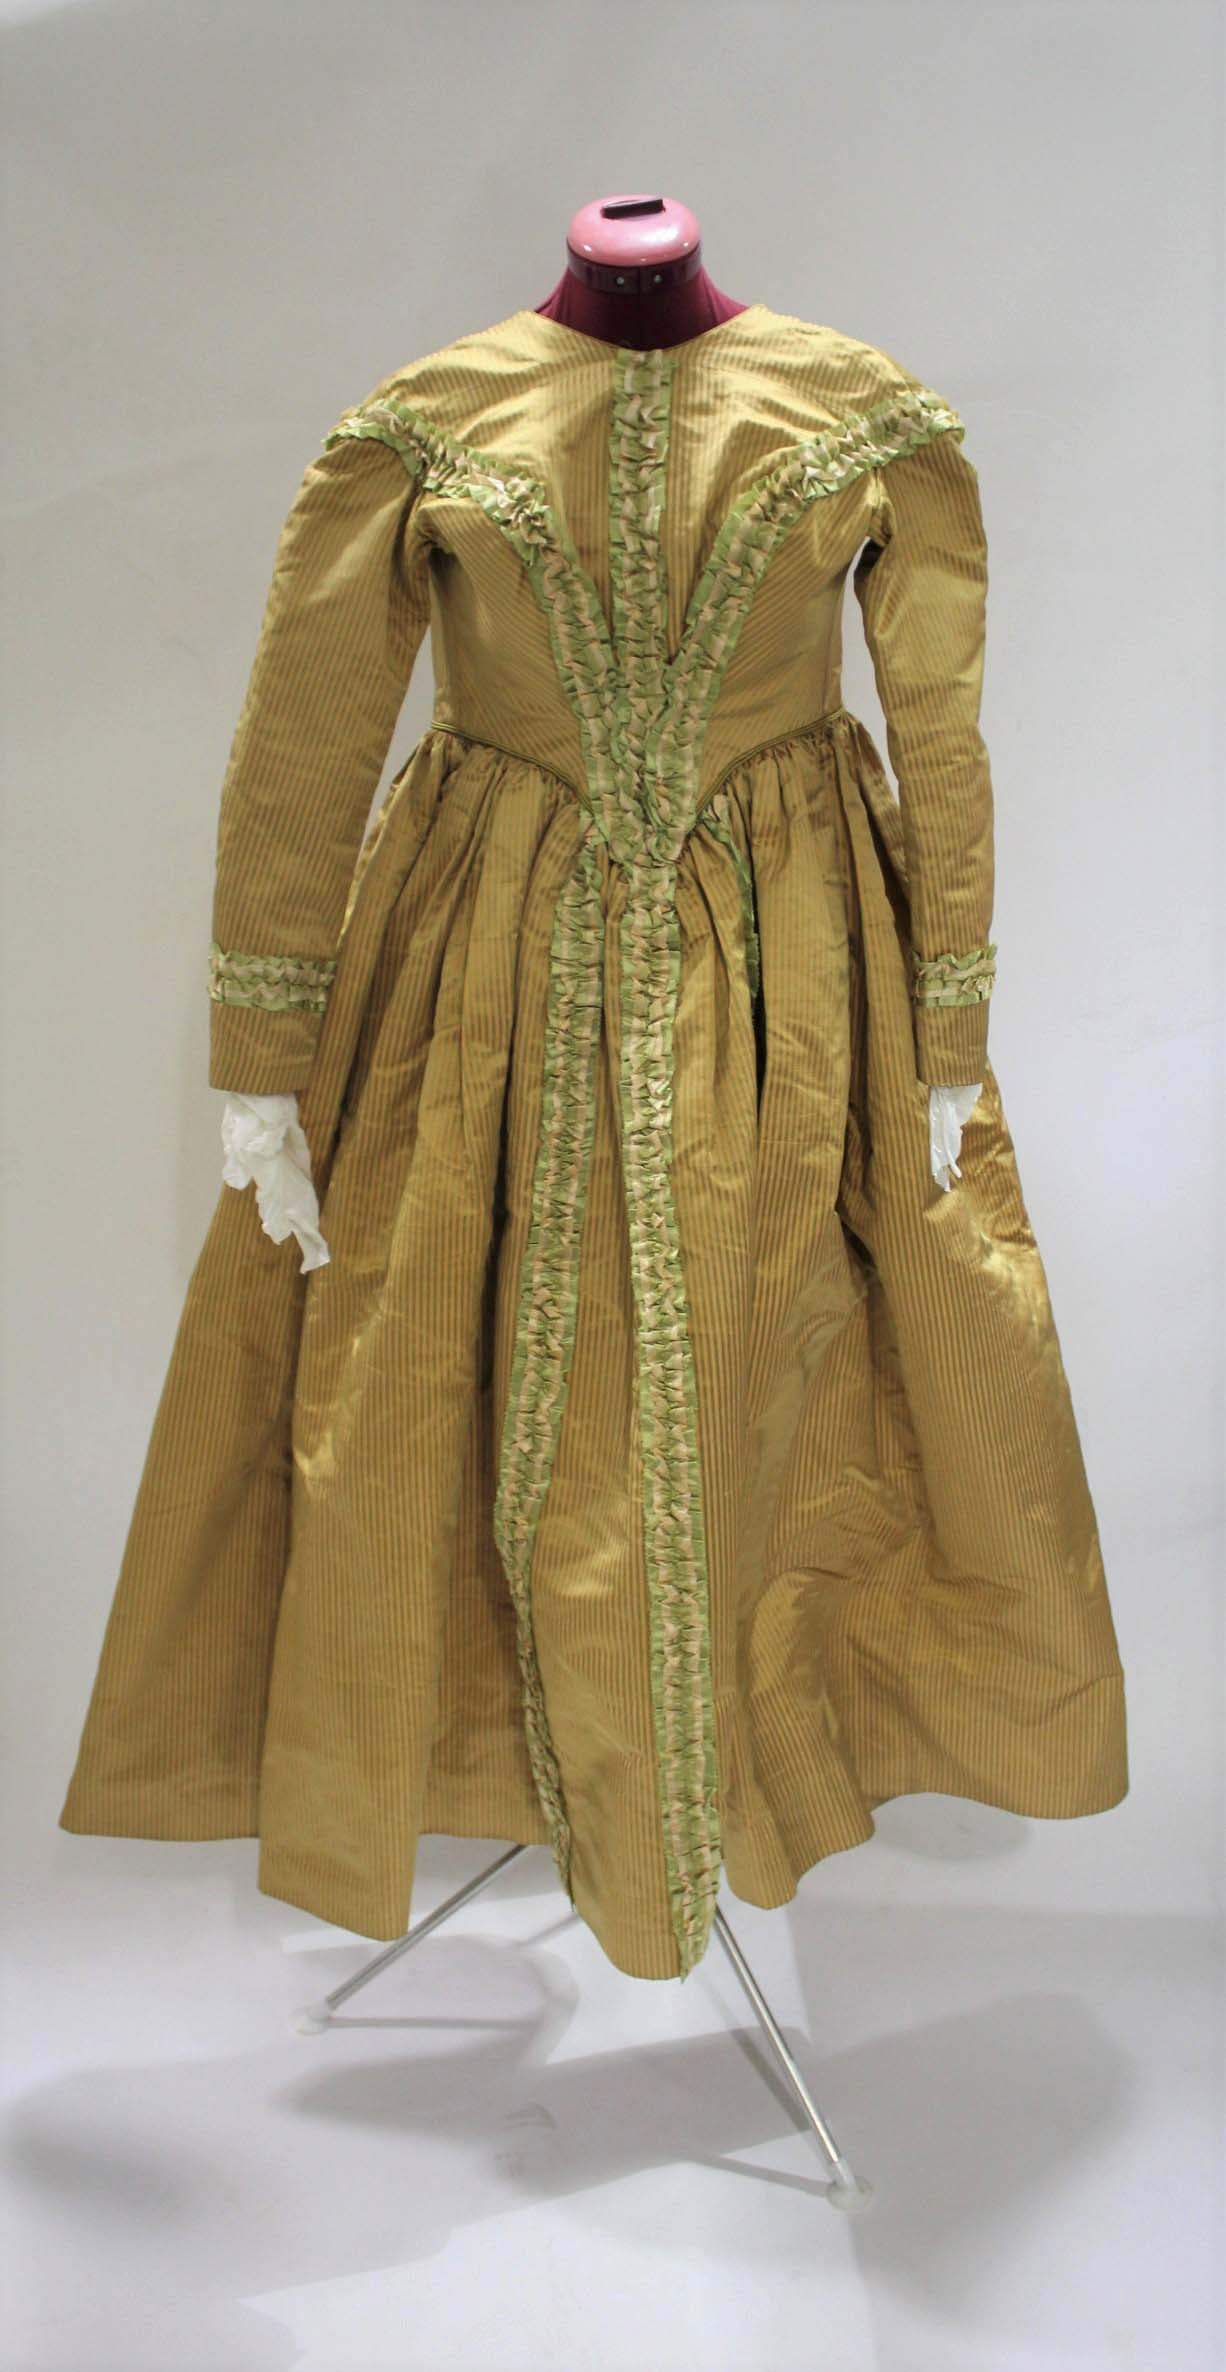 19THC SILK LADIES DRESS a mid 19thc apricot and olive green striped silk dress, decorated with